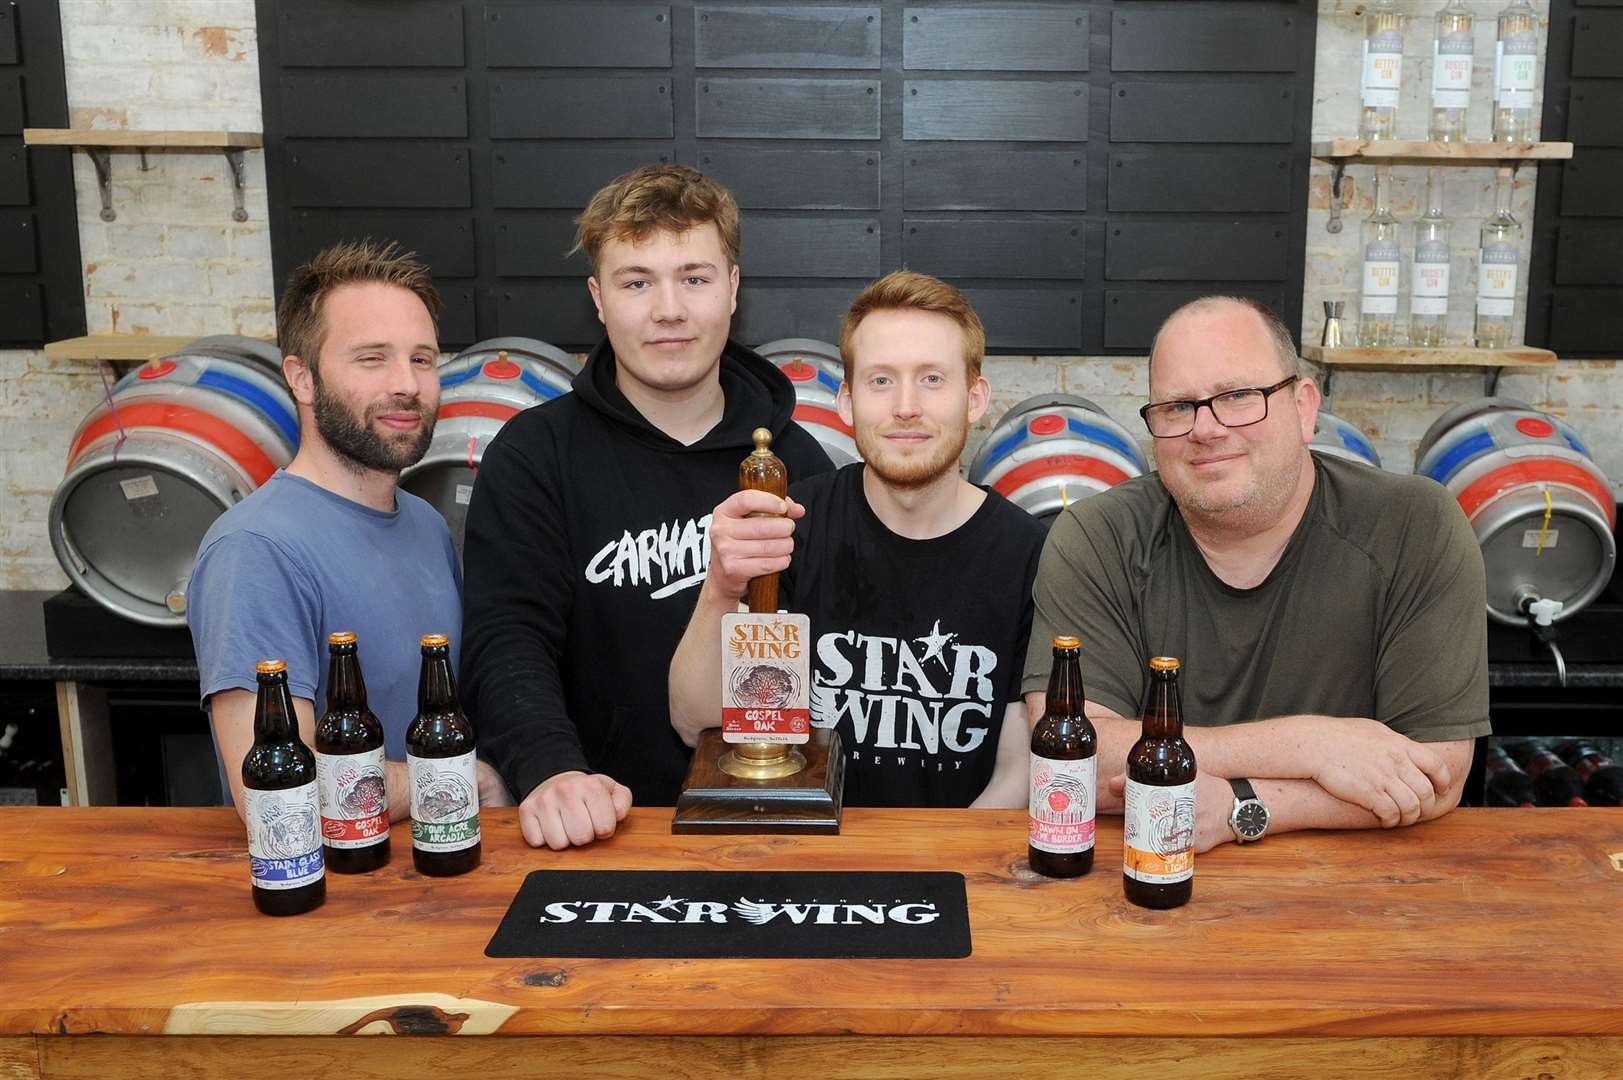 Star Wing Brewery has submitted an application for an outdoor theatre. Pictured: Adam Chandler, Alfie Brydon, David Upton and Mark Duxon. Picture by Mecha Morton.